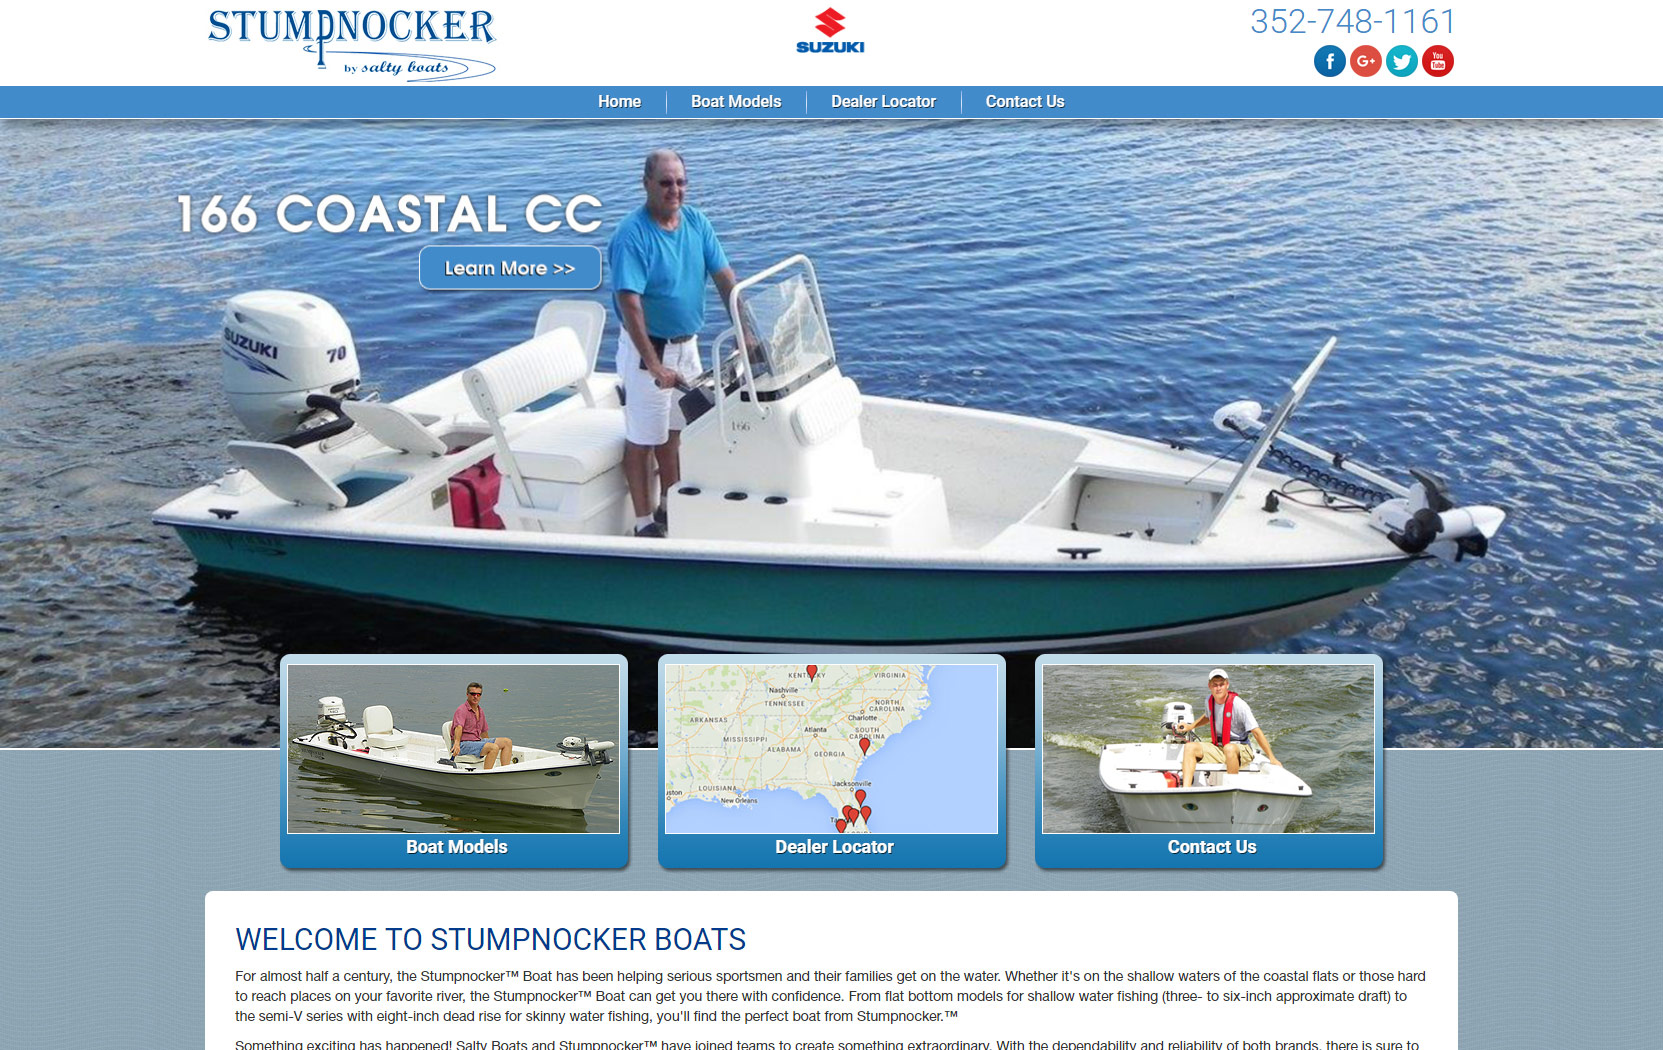 Stumpnocker Boats